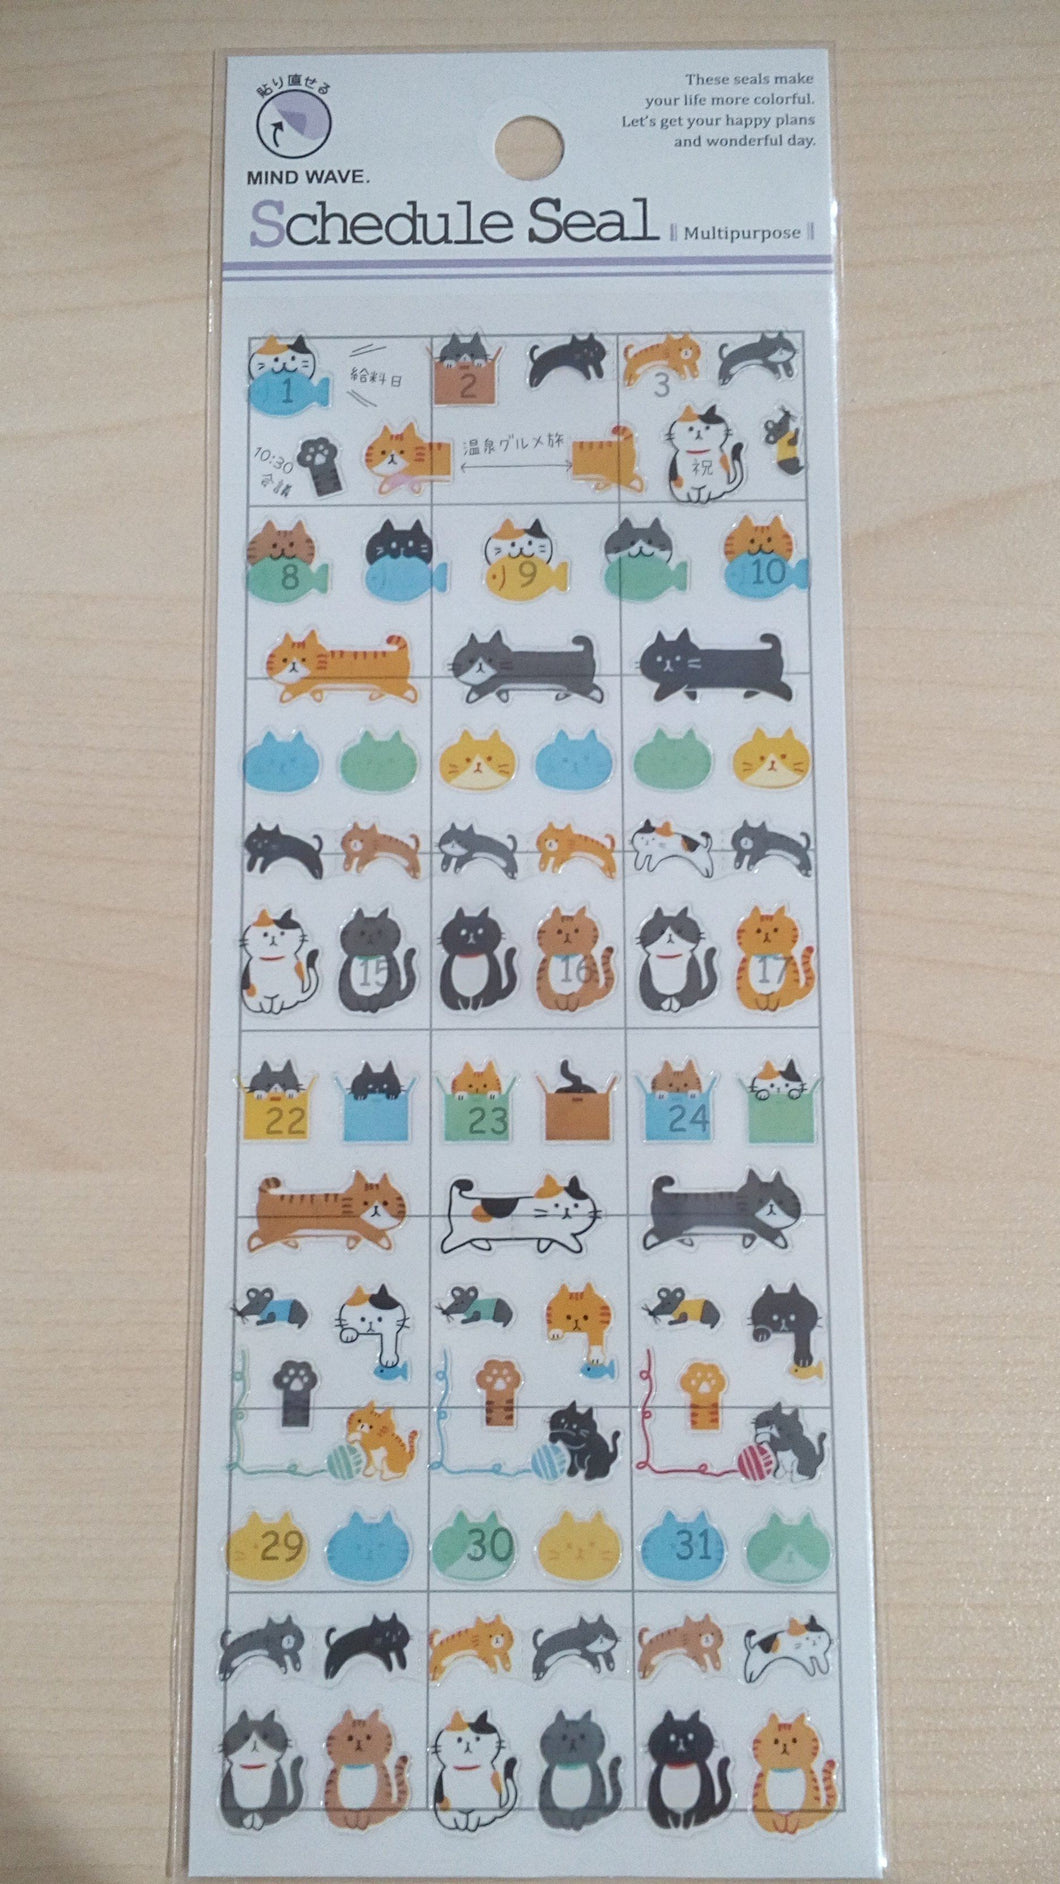 Sticker Schedule Seal Cat With Fish - Multipurpose